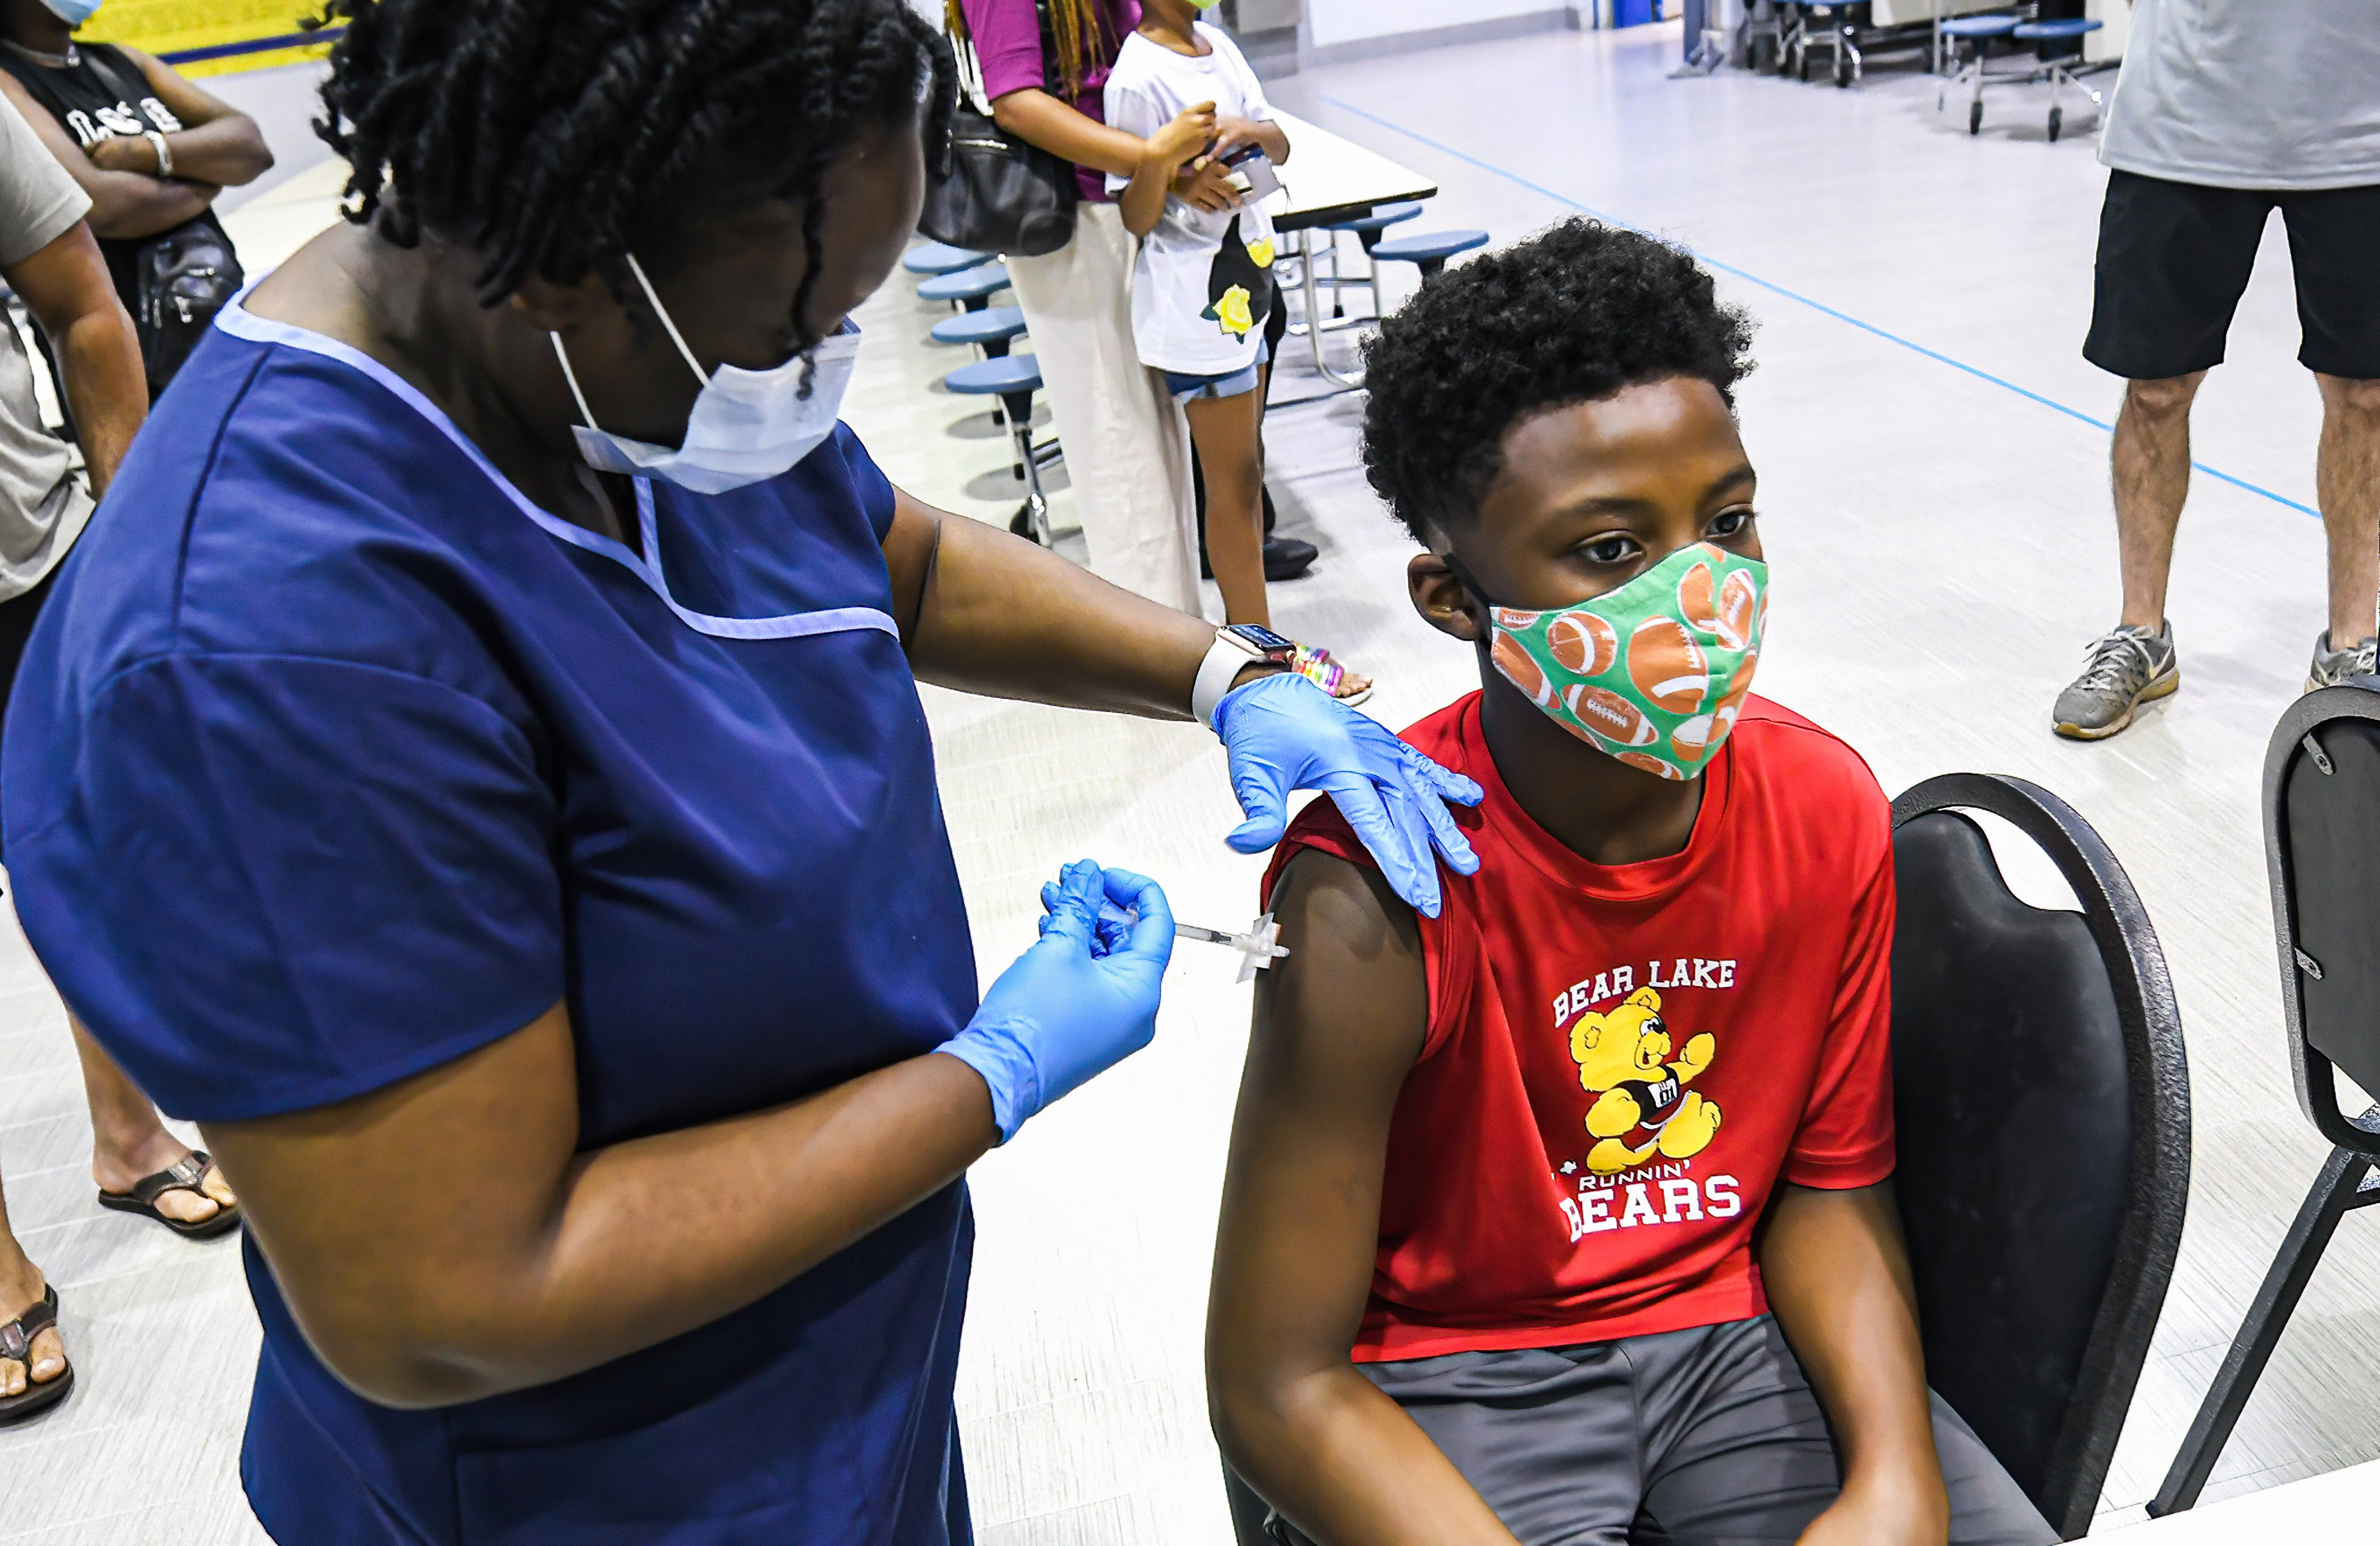 When Will Kids' COVID Vaccines Be Available?